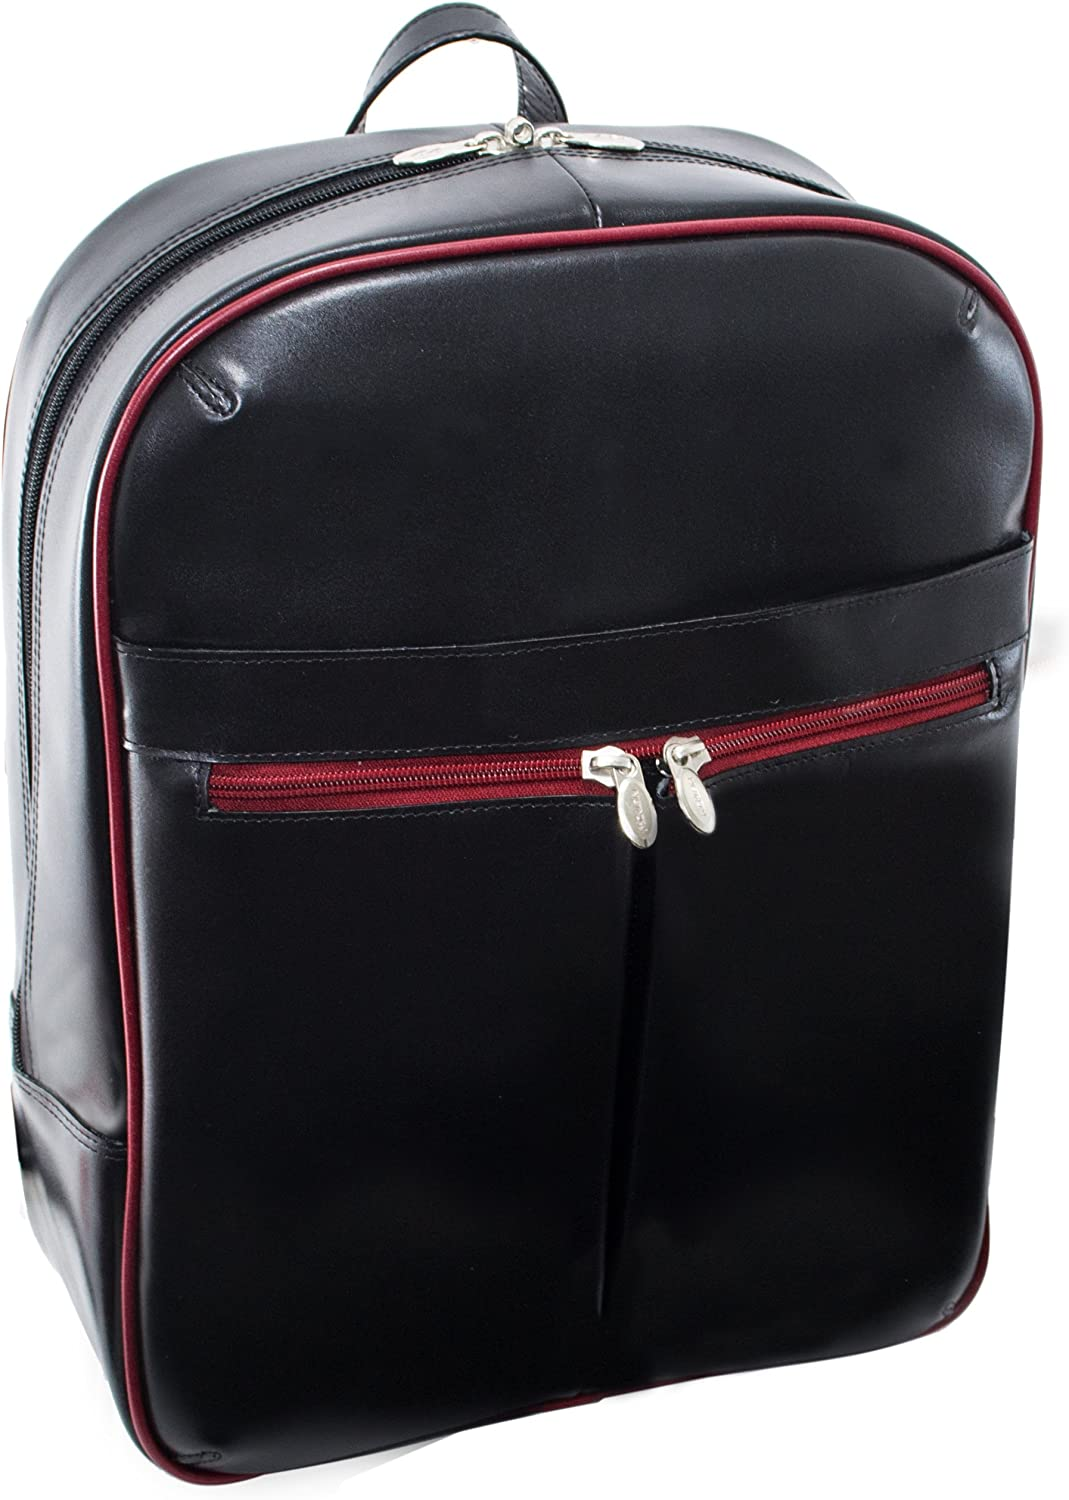 """McKlein, L Series, Avalon, Top Grain Cowhide Leather, 15"""" Leather Laptop Slim Backpack, Blk/Red Trim (87880)"""